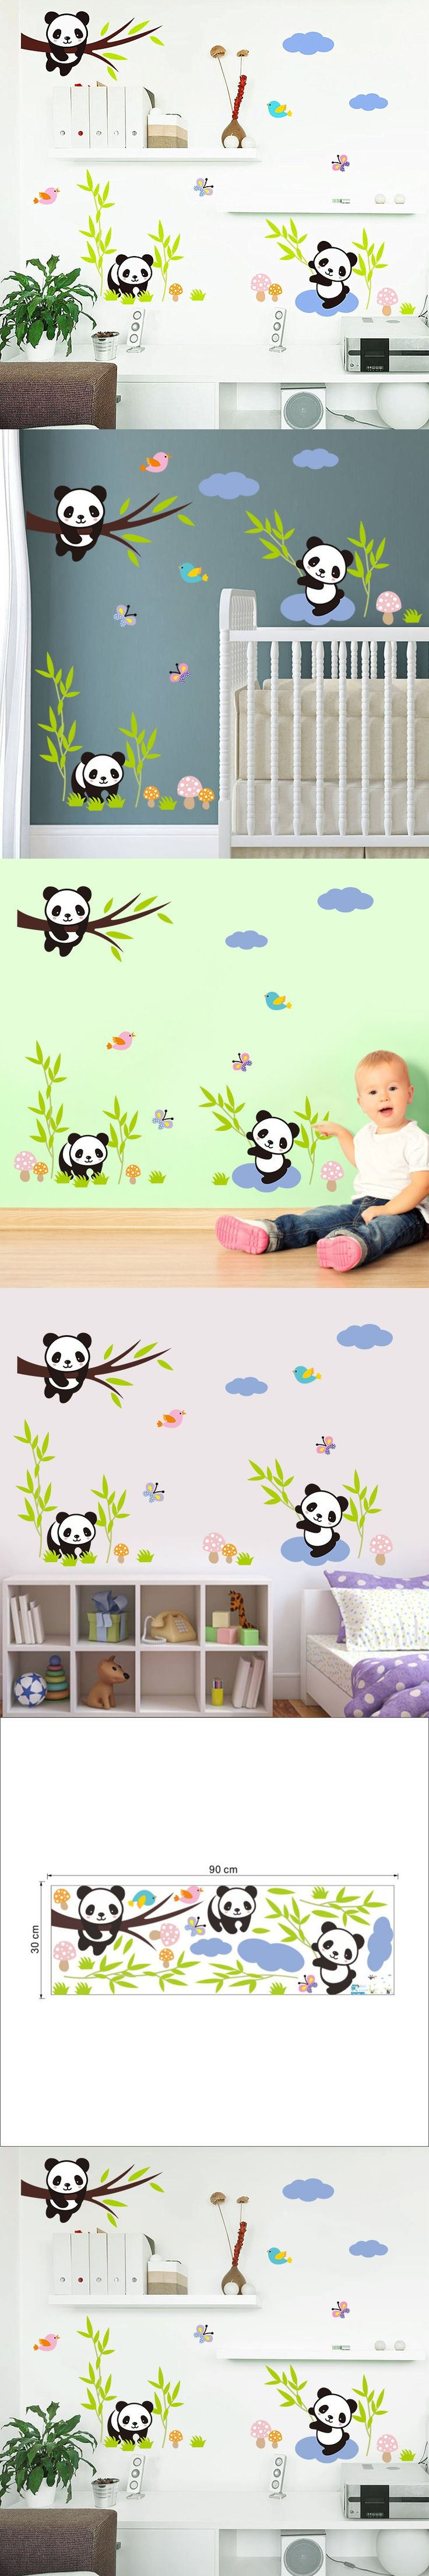 Free shipping!DIy Creative Cute panda bamboo grass stickers home decor for kids rooms living room wall stickers PVC Removable $2.89